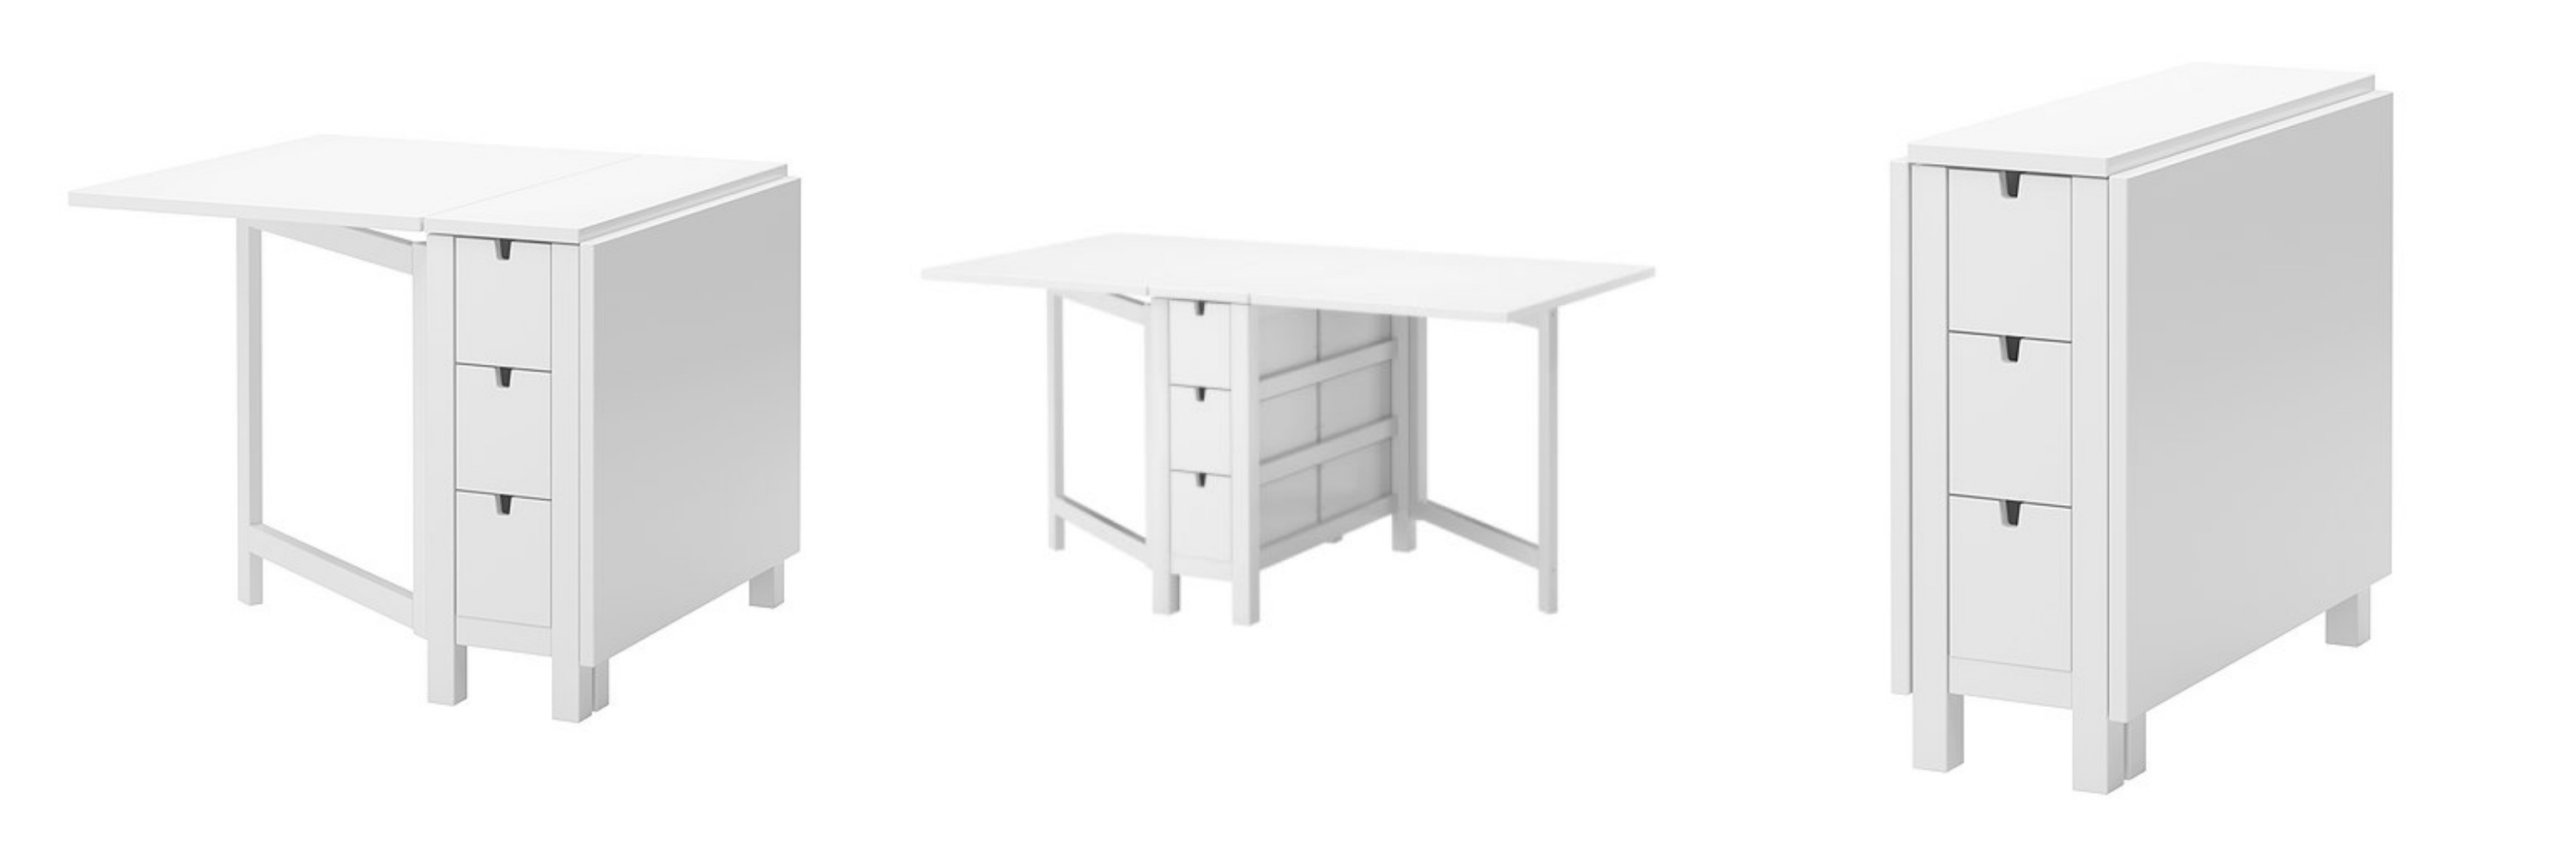 Crate and barrel span gateleg dining table decor look alikes for Span white gateleg table